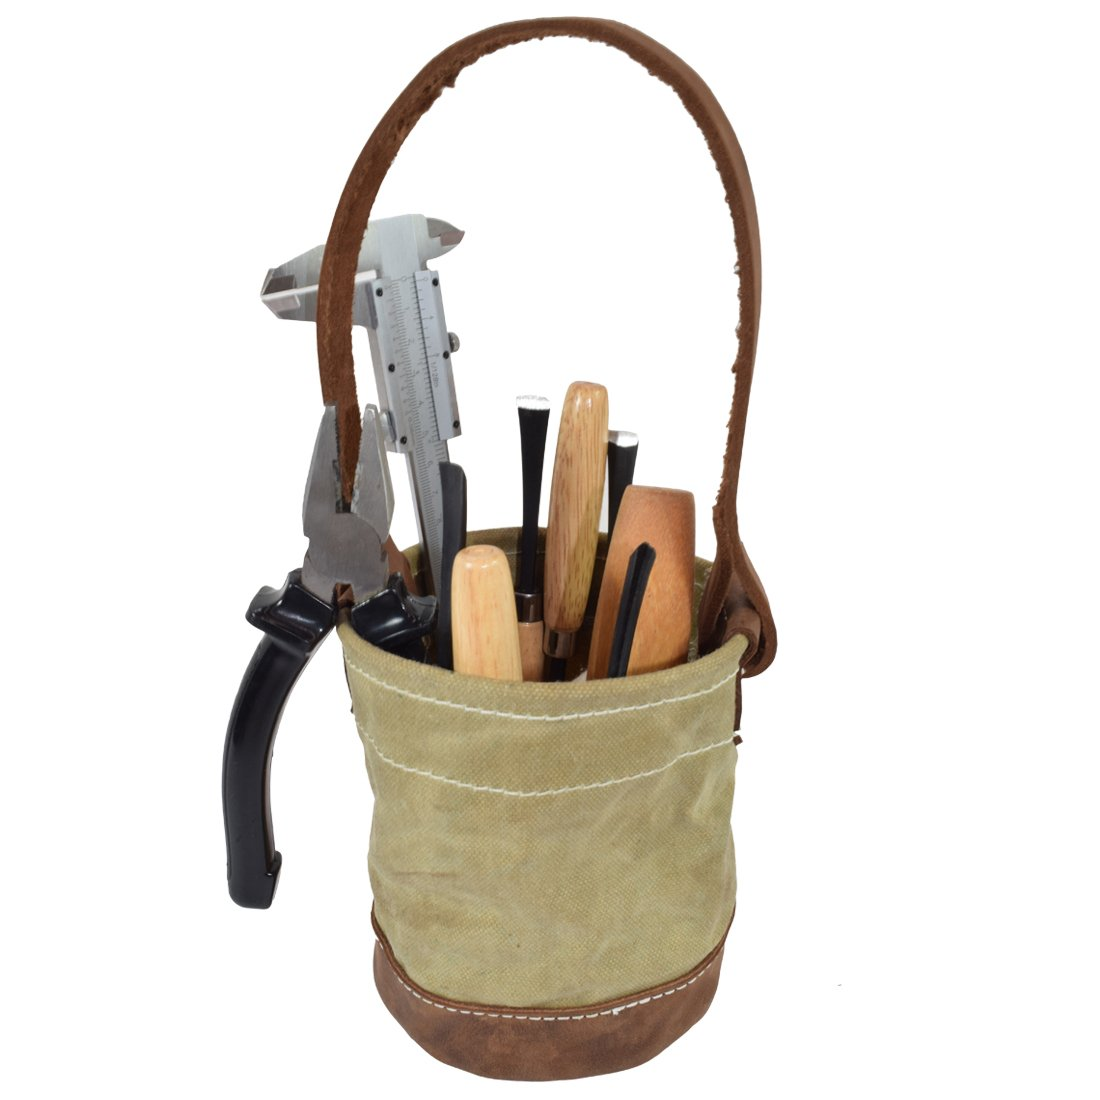 Waxed Canvas Leather Bottom Tool Bucket for Work/Camping/Fishing Organizer Handmade by Hide & Drink